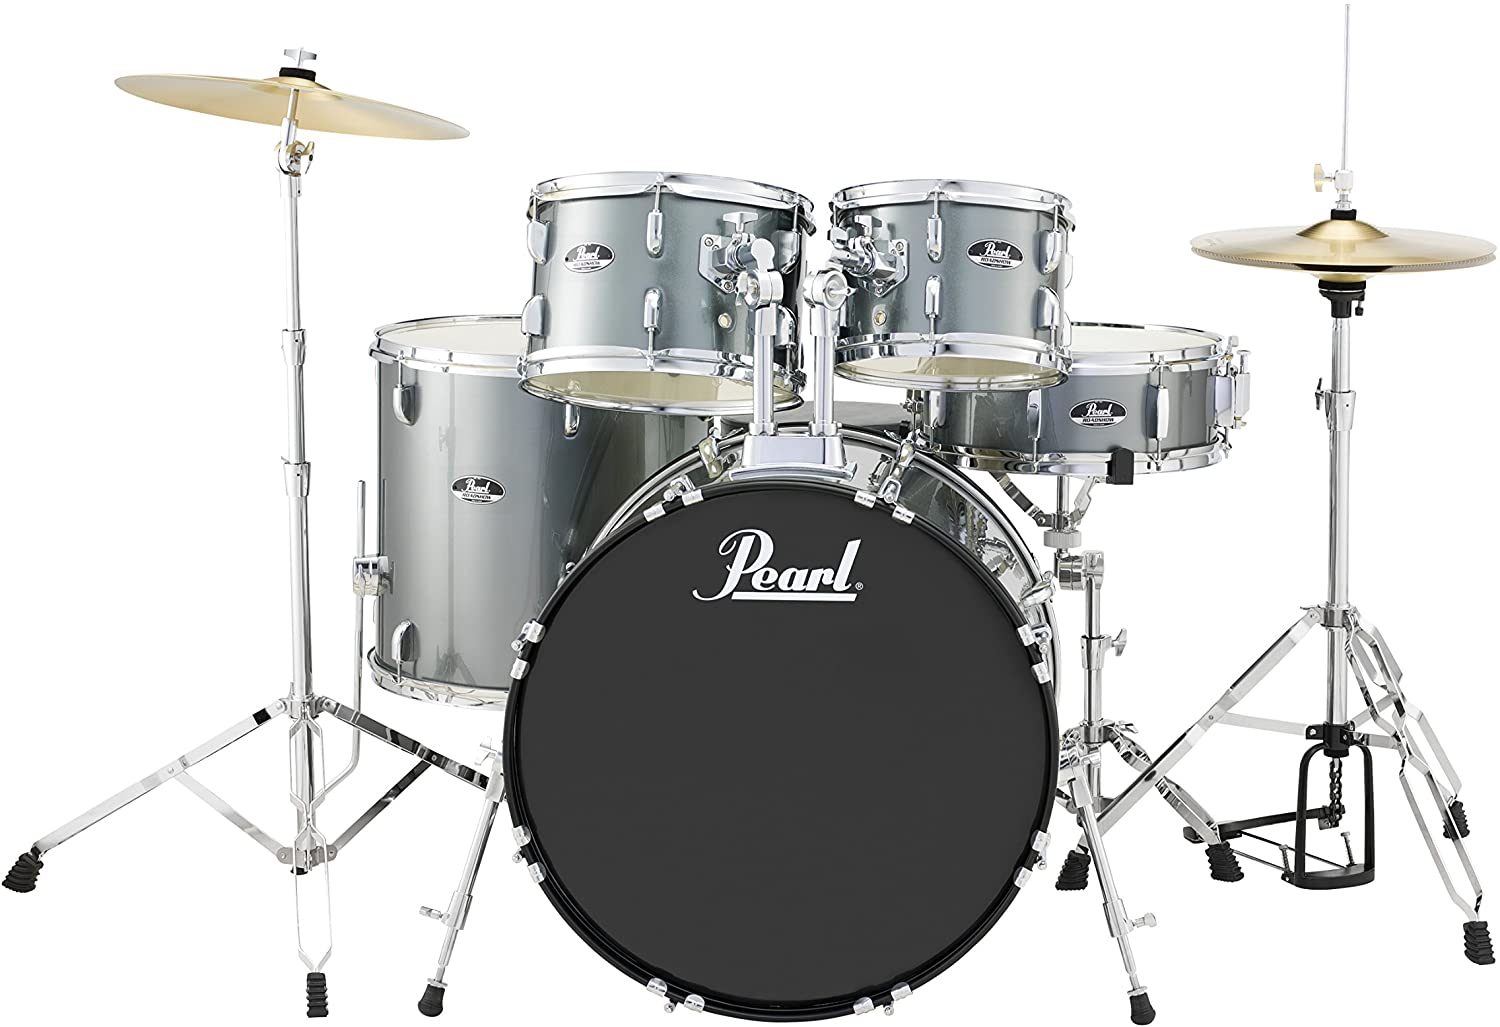 Pearl RS525SCC706 Roadshow 5-Piece Drum Set | Drums For Beginner